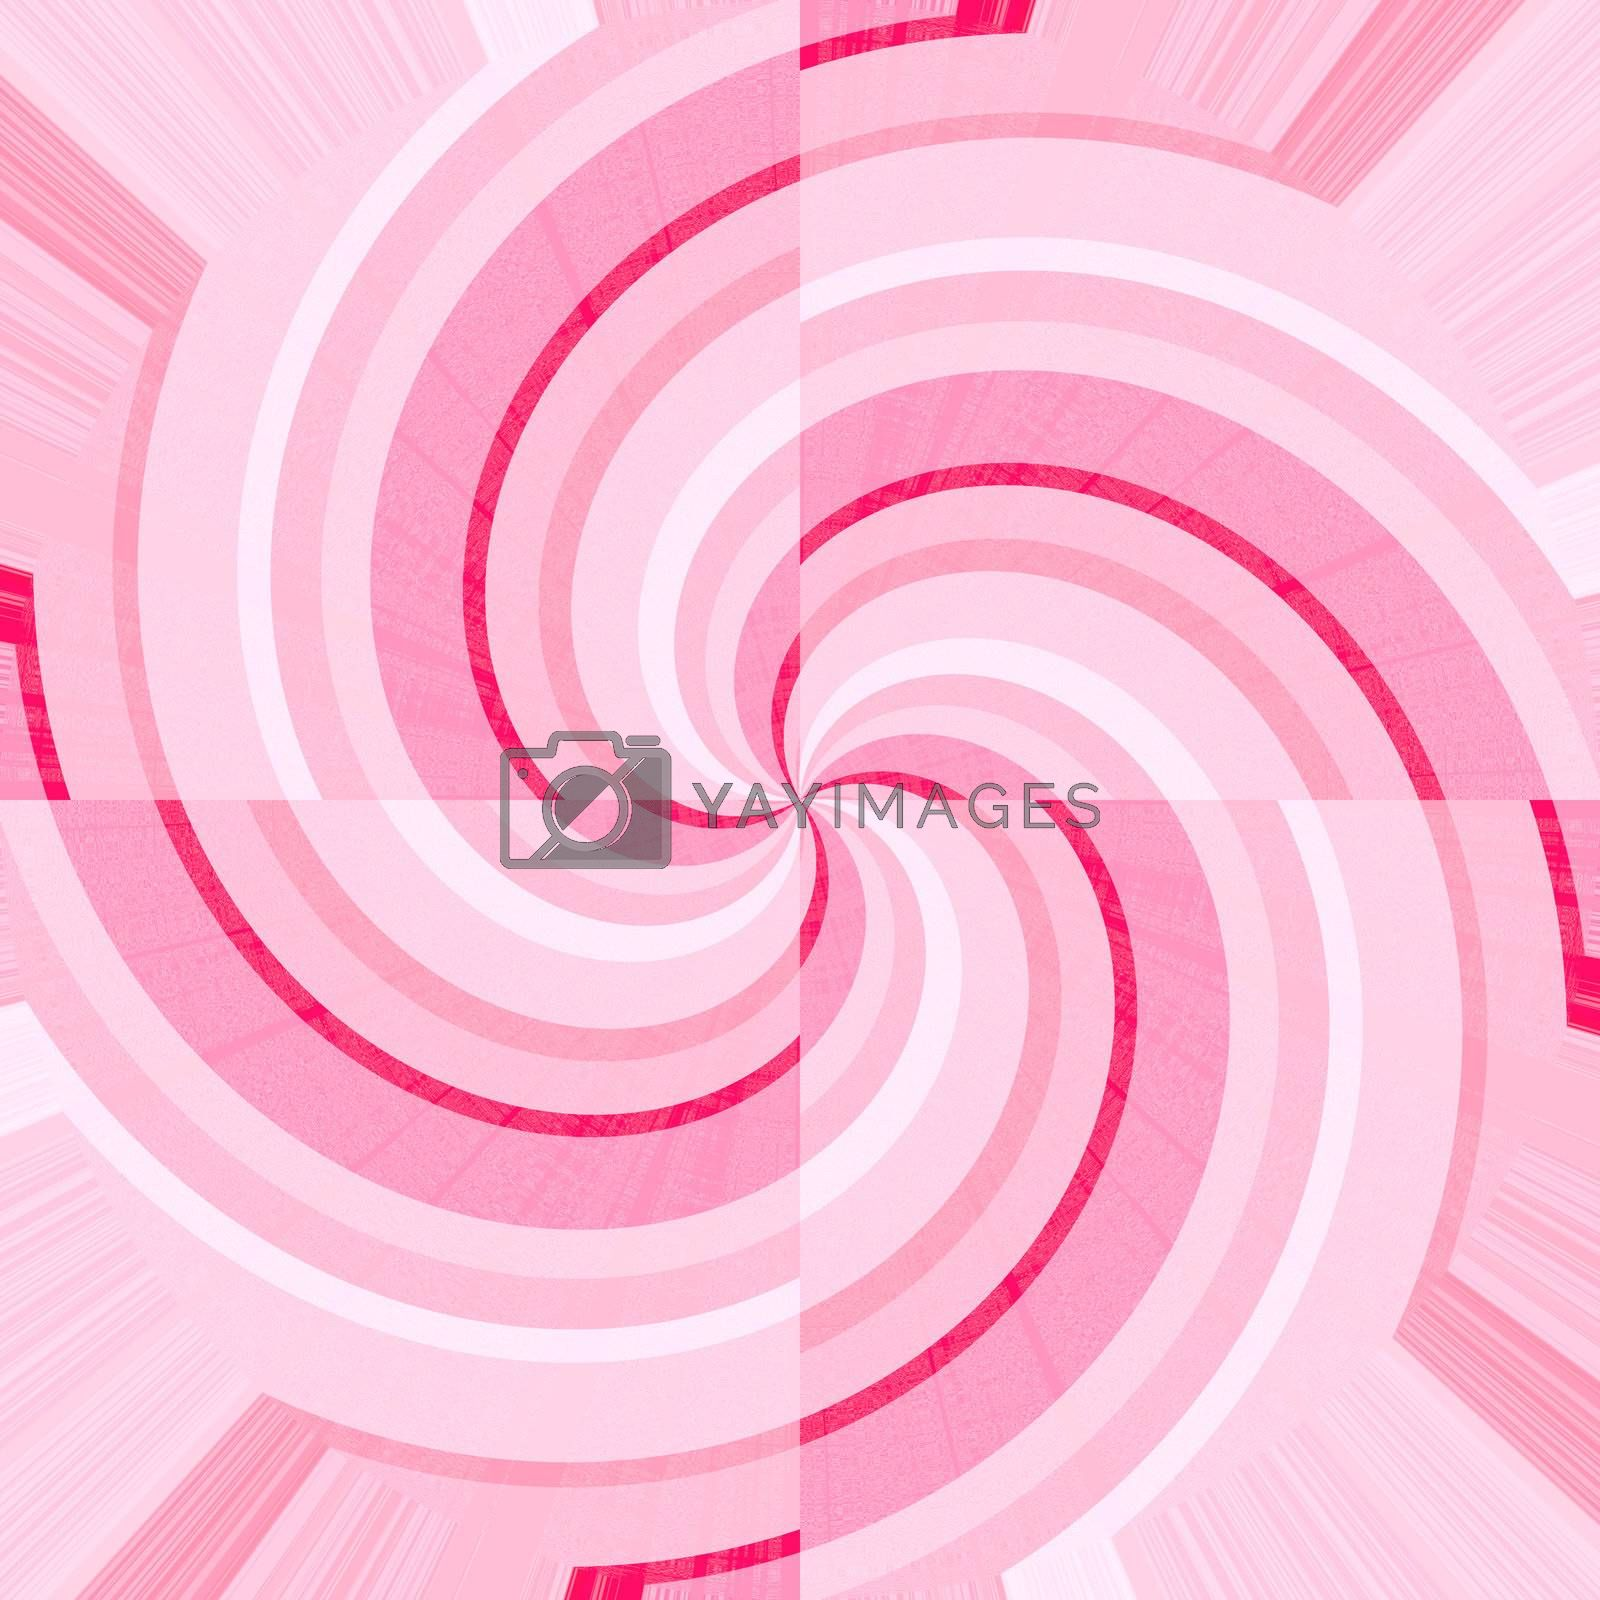 Pink and white curves forming spirals